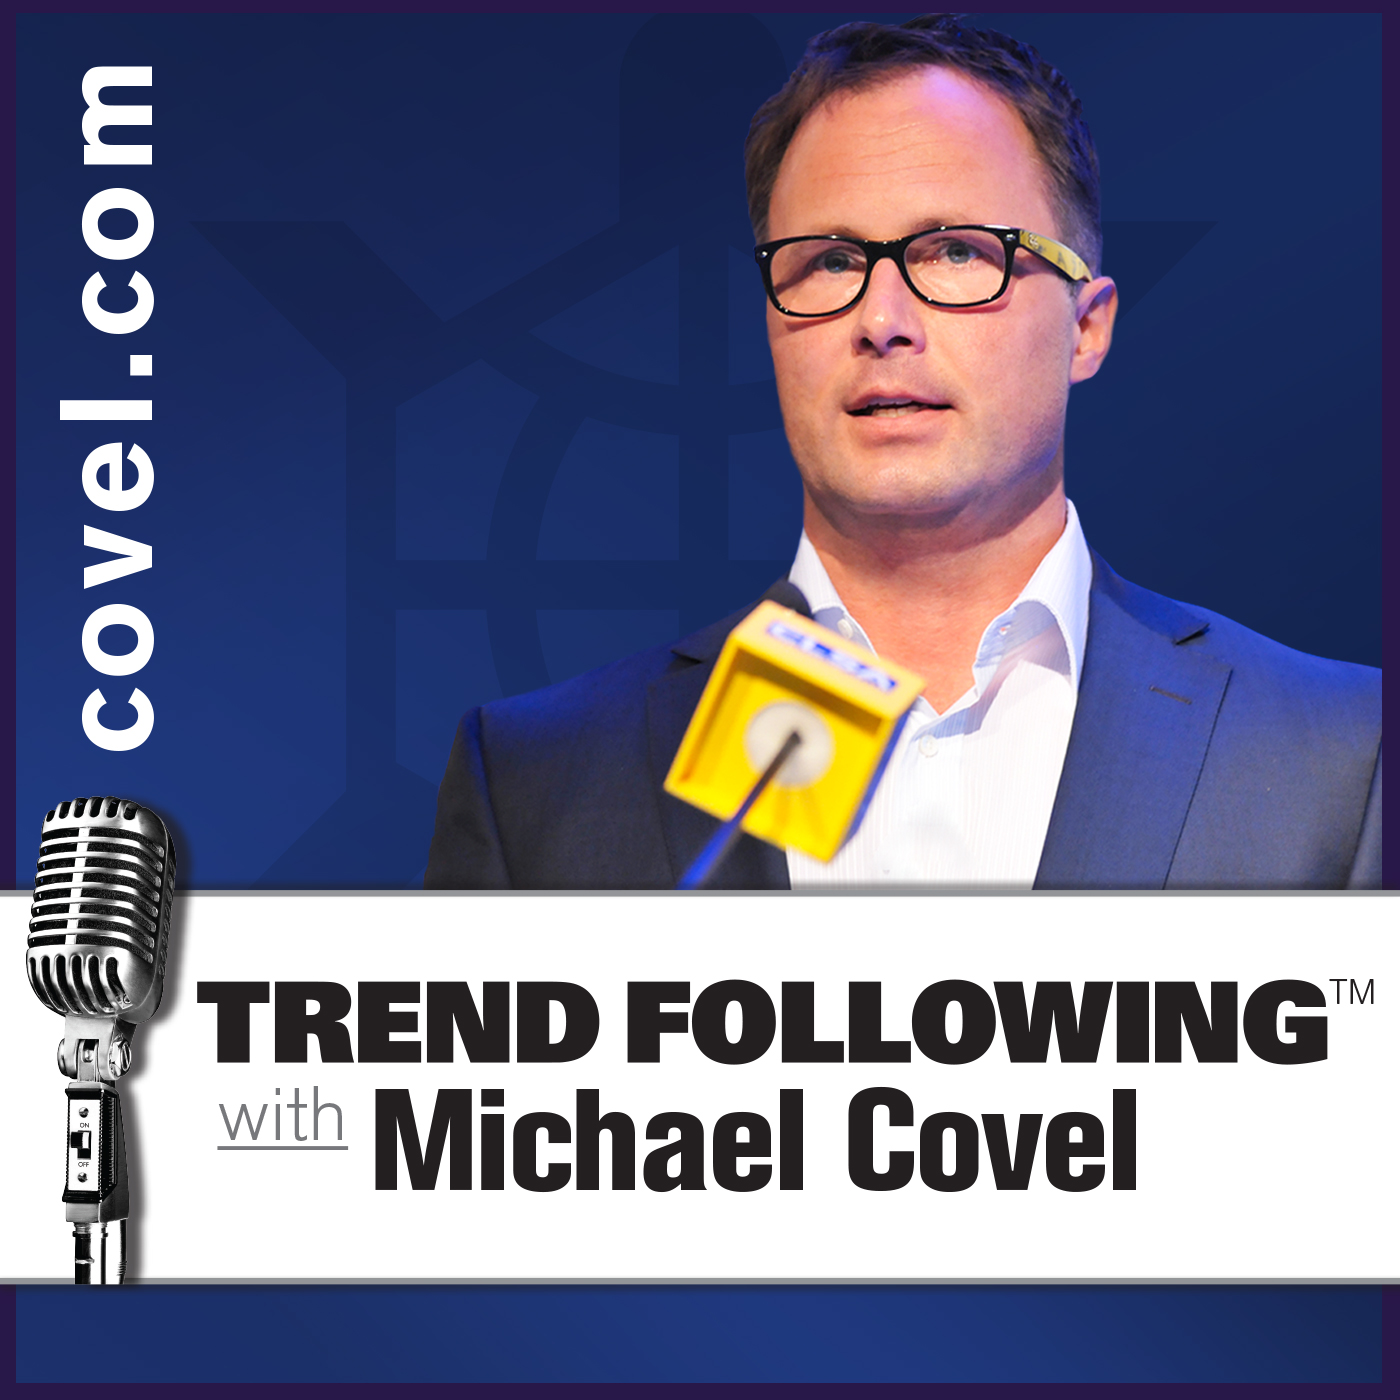 Ep. 477: Morgan Wright Interview with Michael Covel on Trend Following Radio